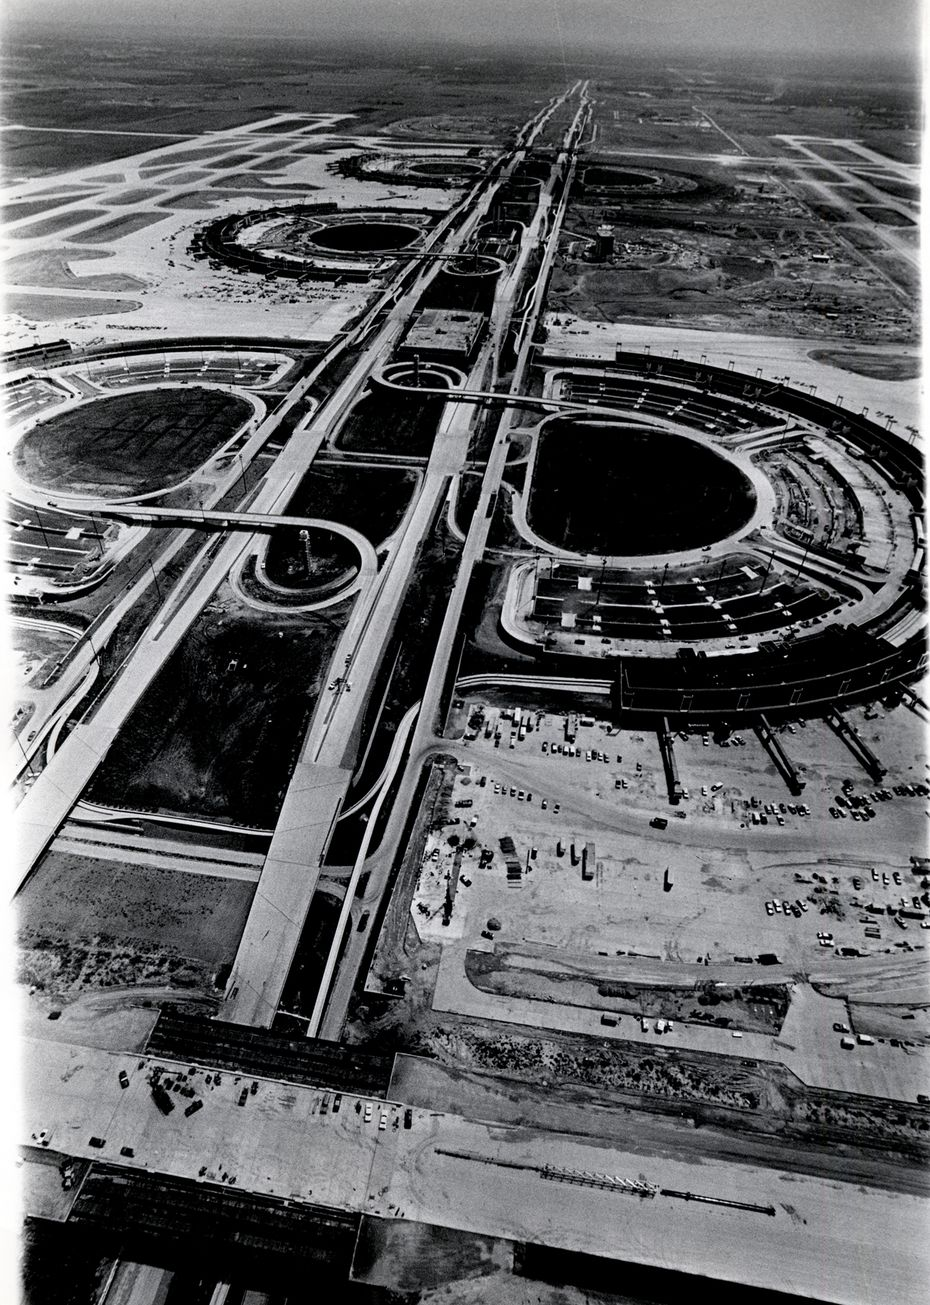 Shot September 10, 1973 - Construction continues on the Dallas Fort Worth Regional Airport.